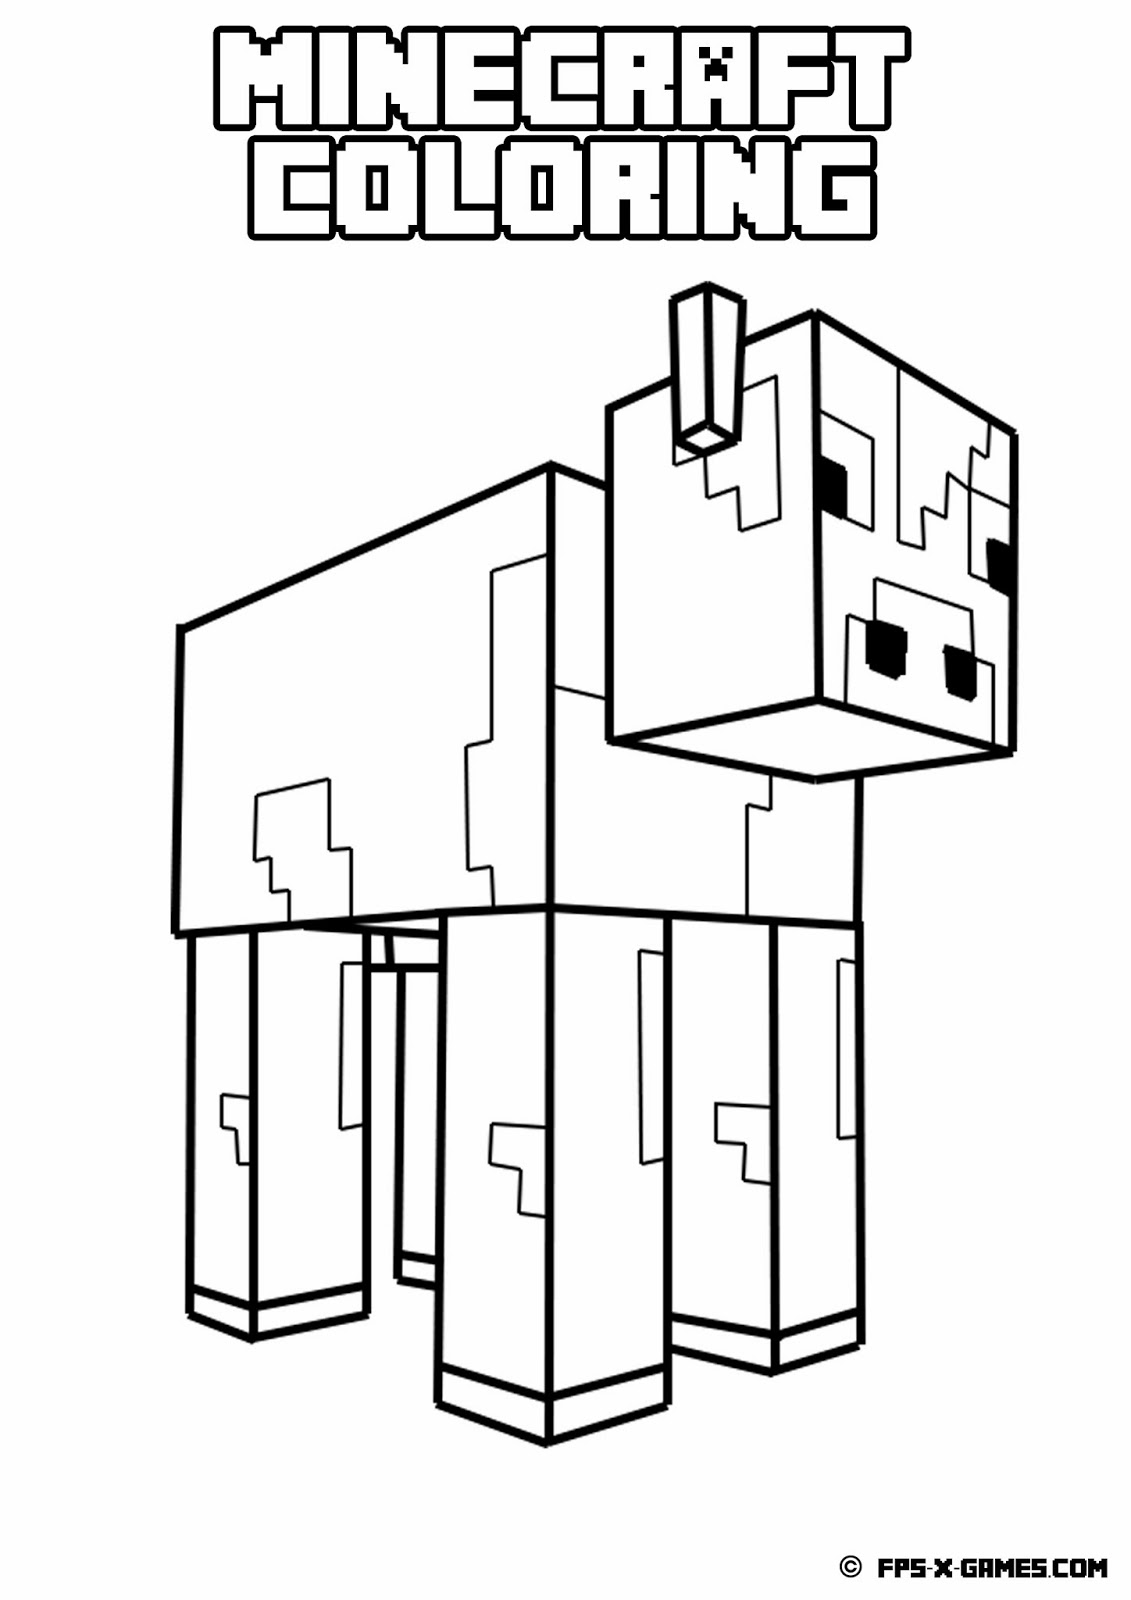 print minecraft coloring pages top 20 minecraft printable coloring pages printable print coloring minecraft pages